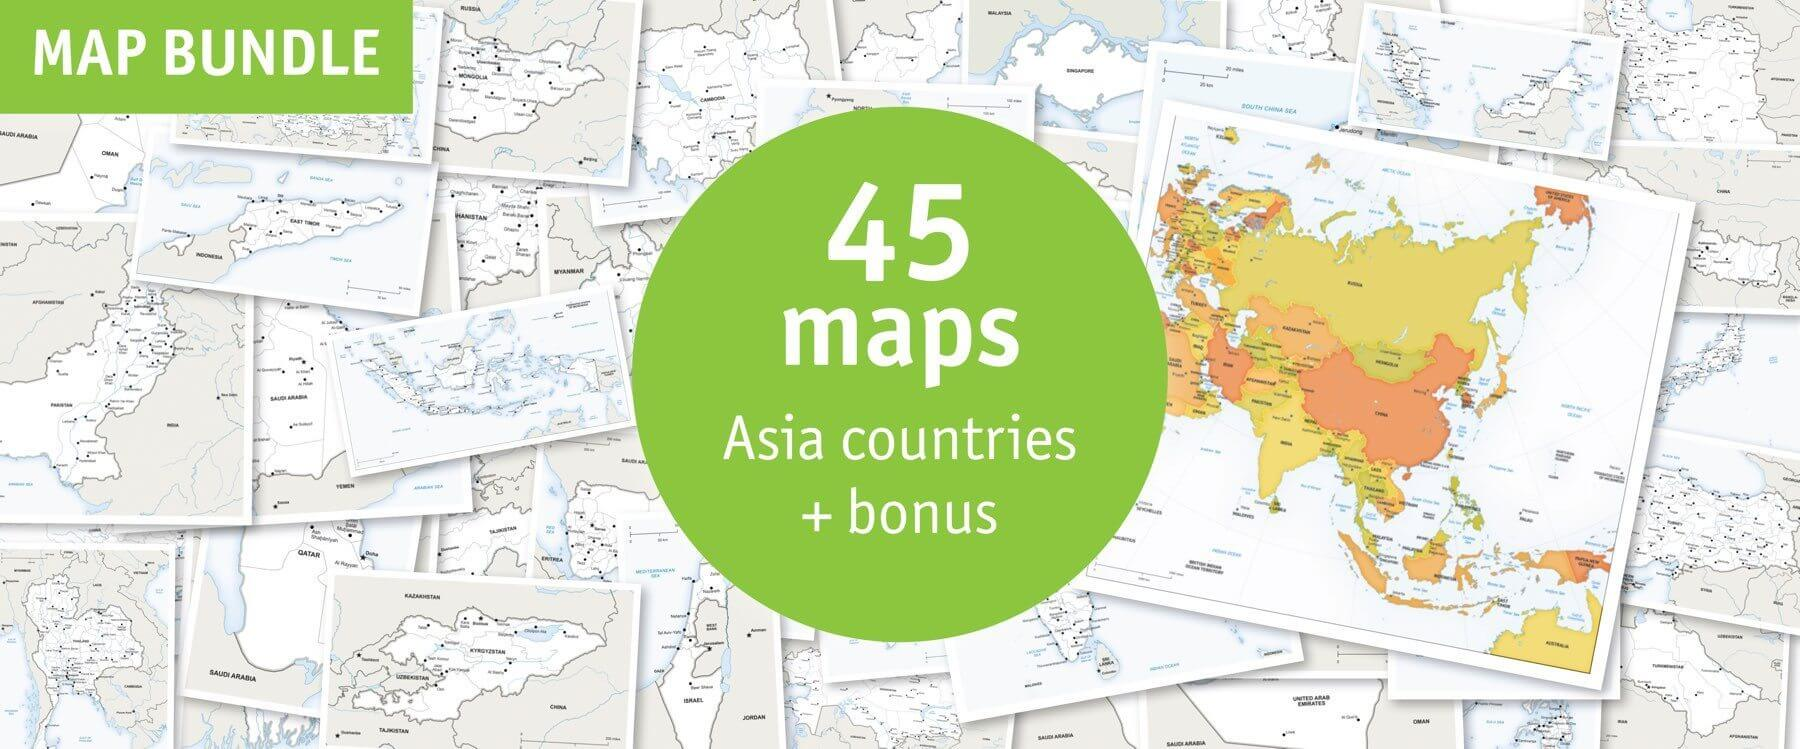 Asia Countries 45 MAPS Bundle Discount